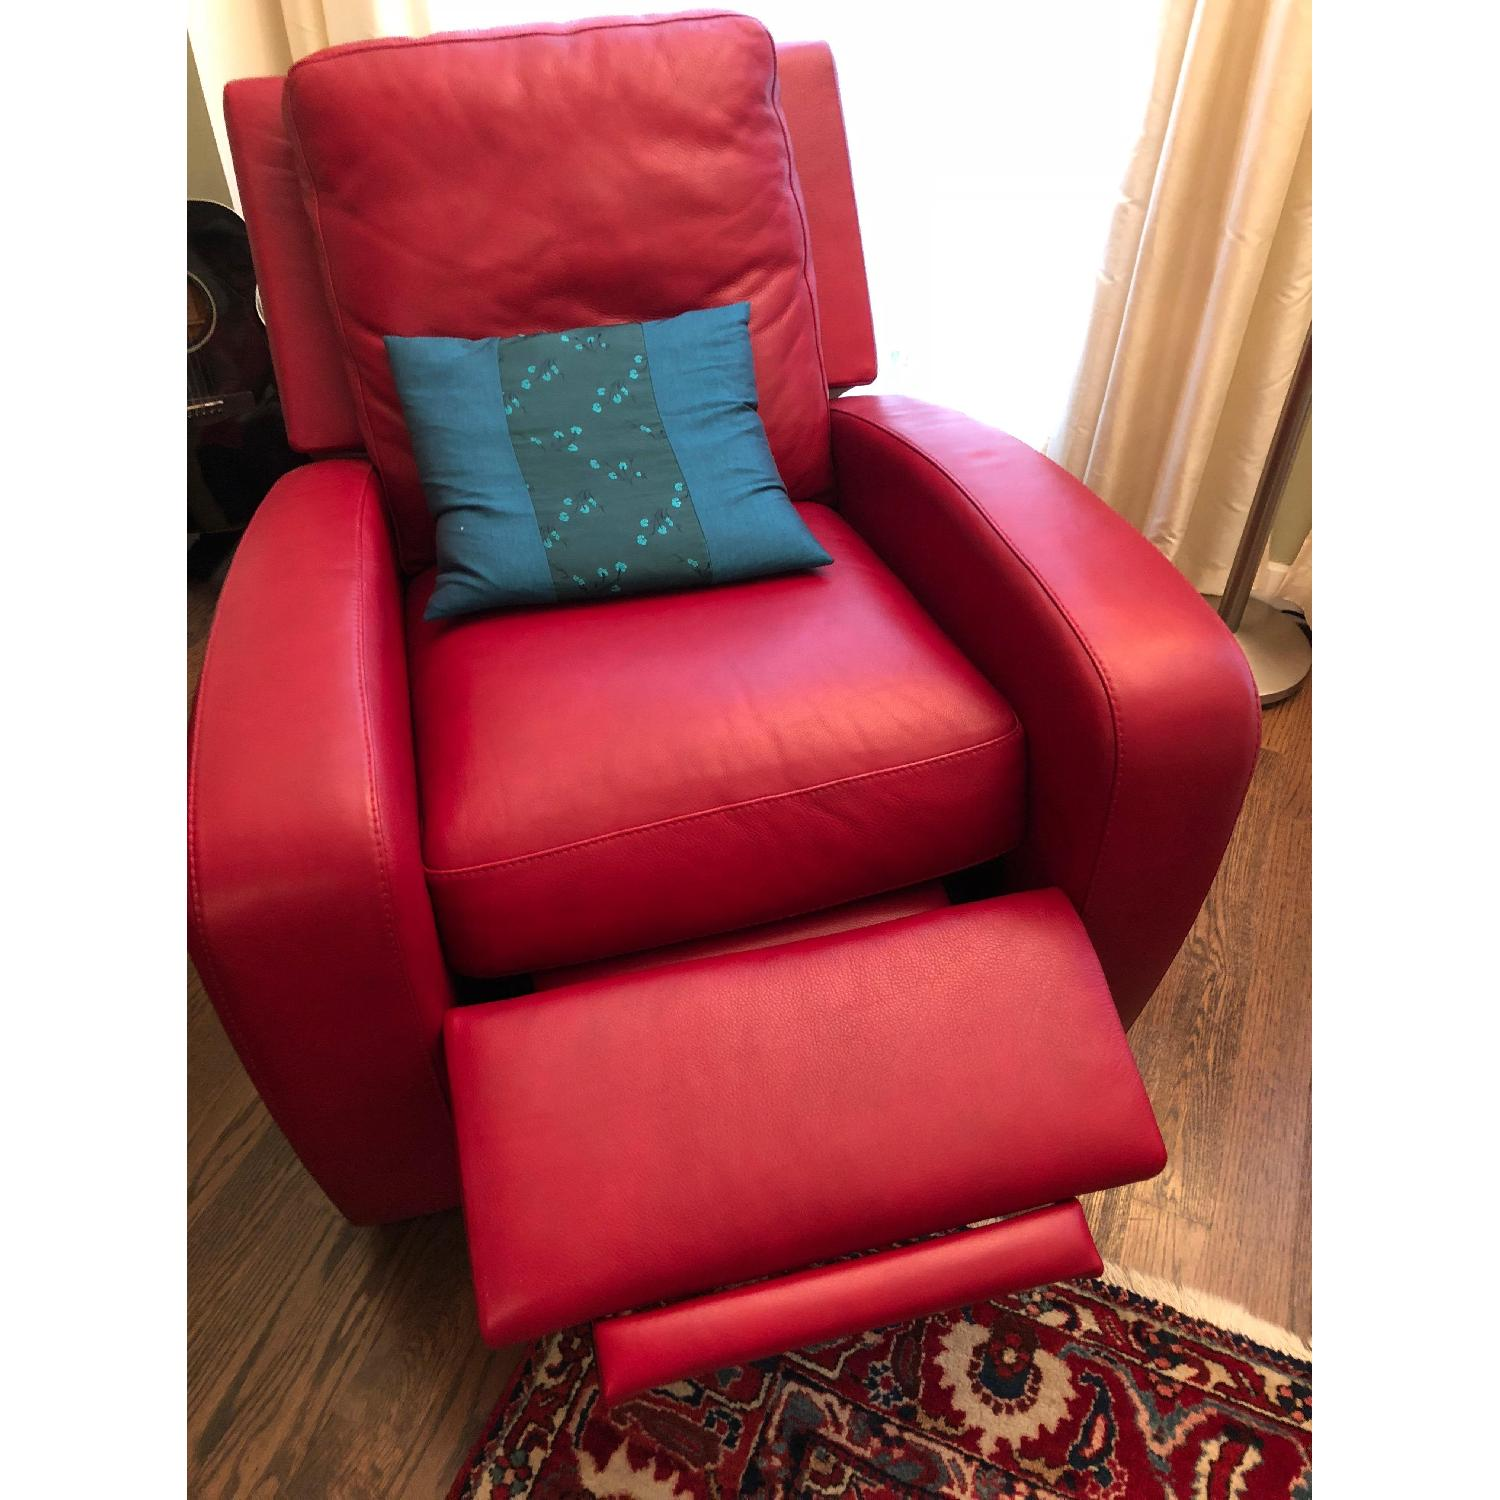 Crate & Barrel Leather Recliner in Red-0